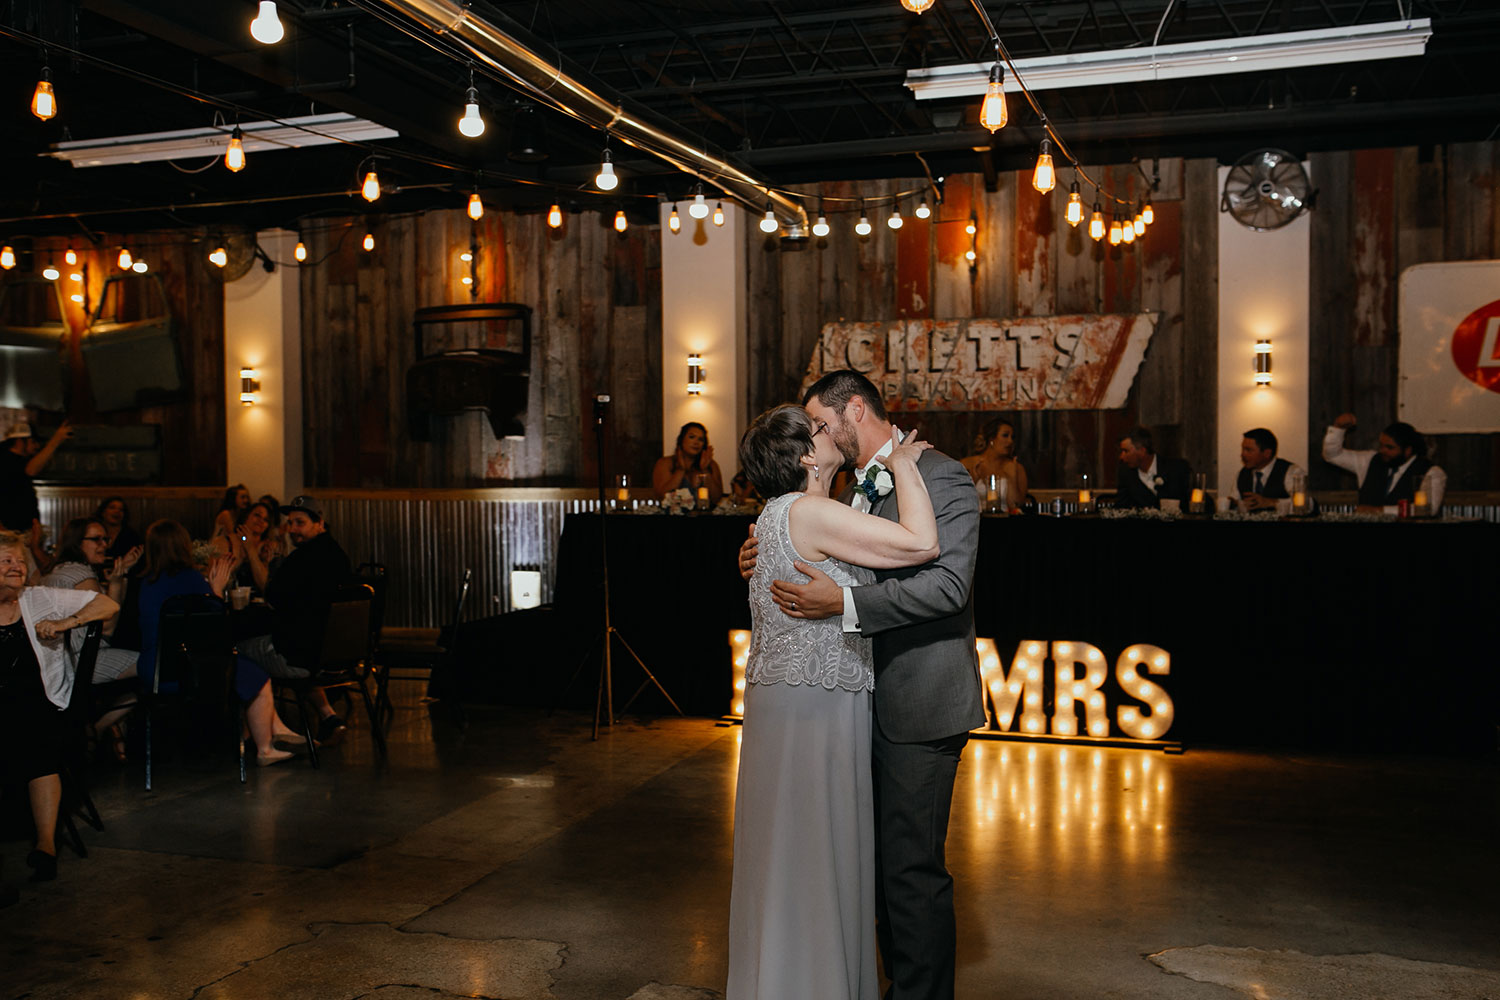 mother-of-groom-kissing-groom-decades-event-center-building-desmoines-iowa-raelyn-ramey-photography..jpg